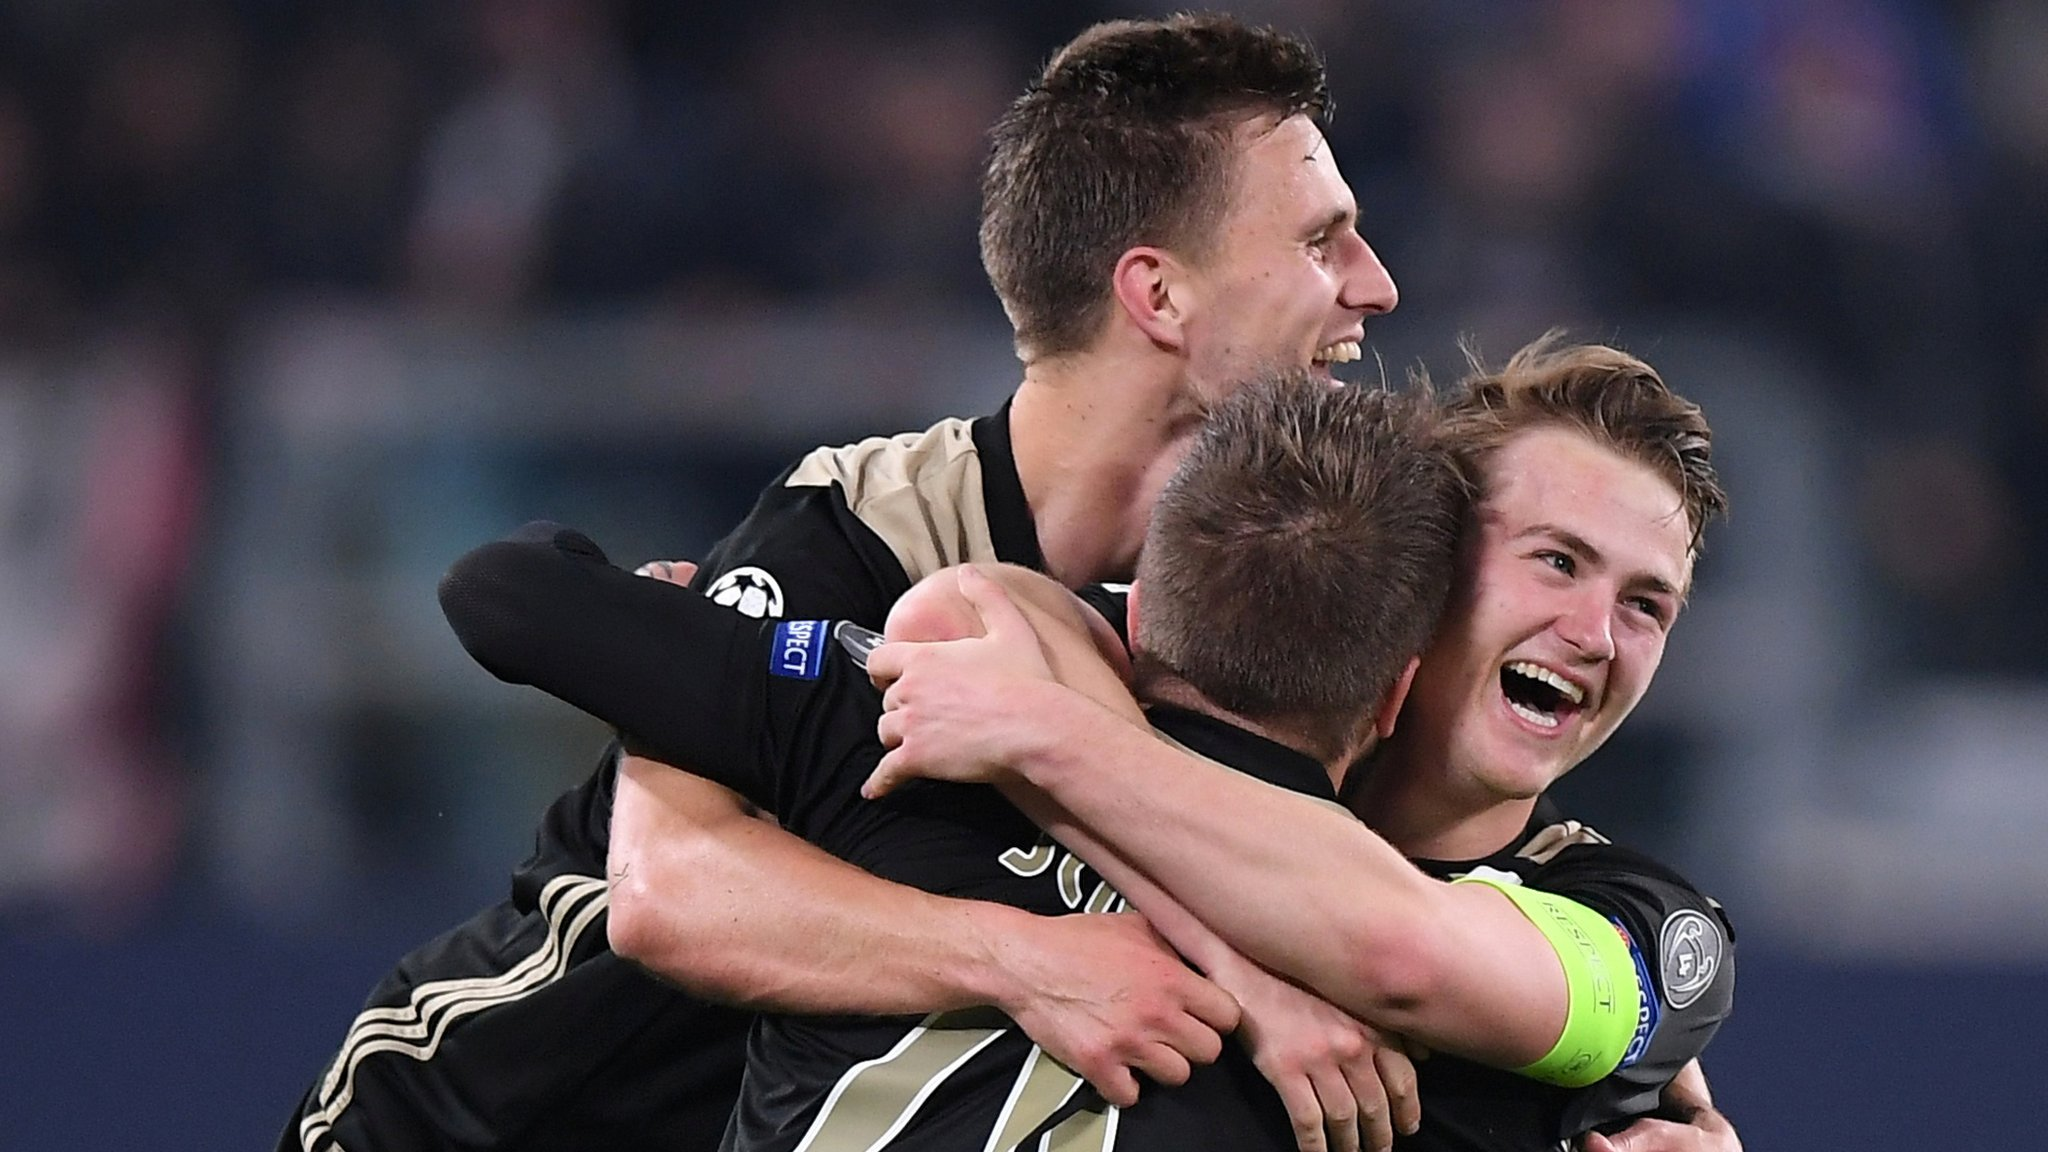 Ajax: Do the Dutch giants have the right formula to succeed once more?